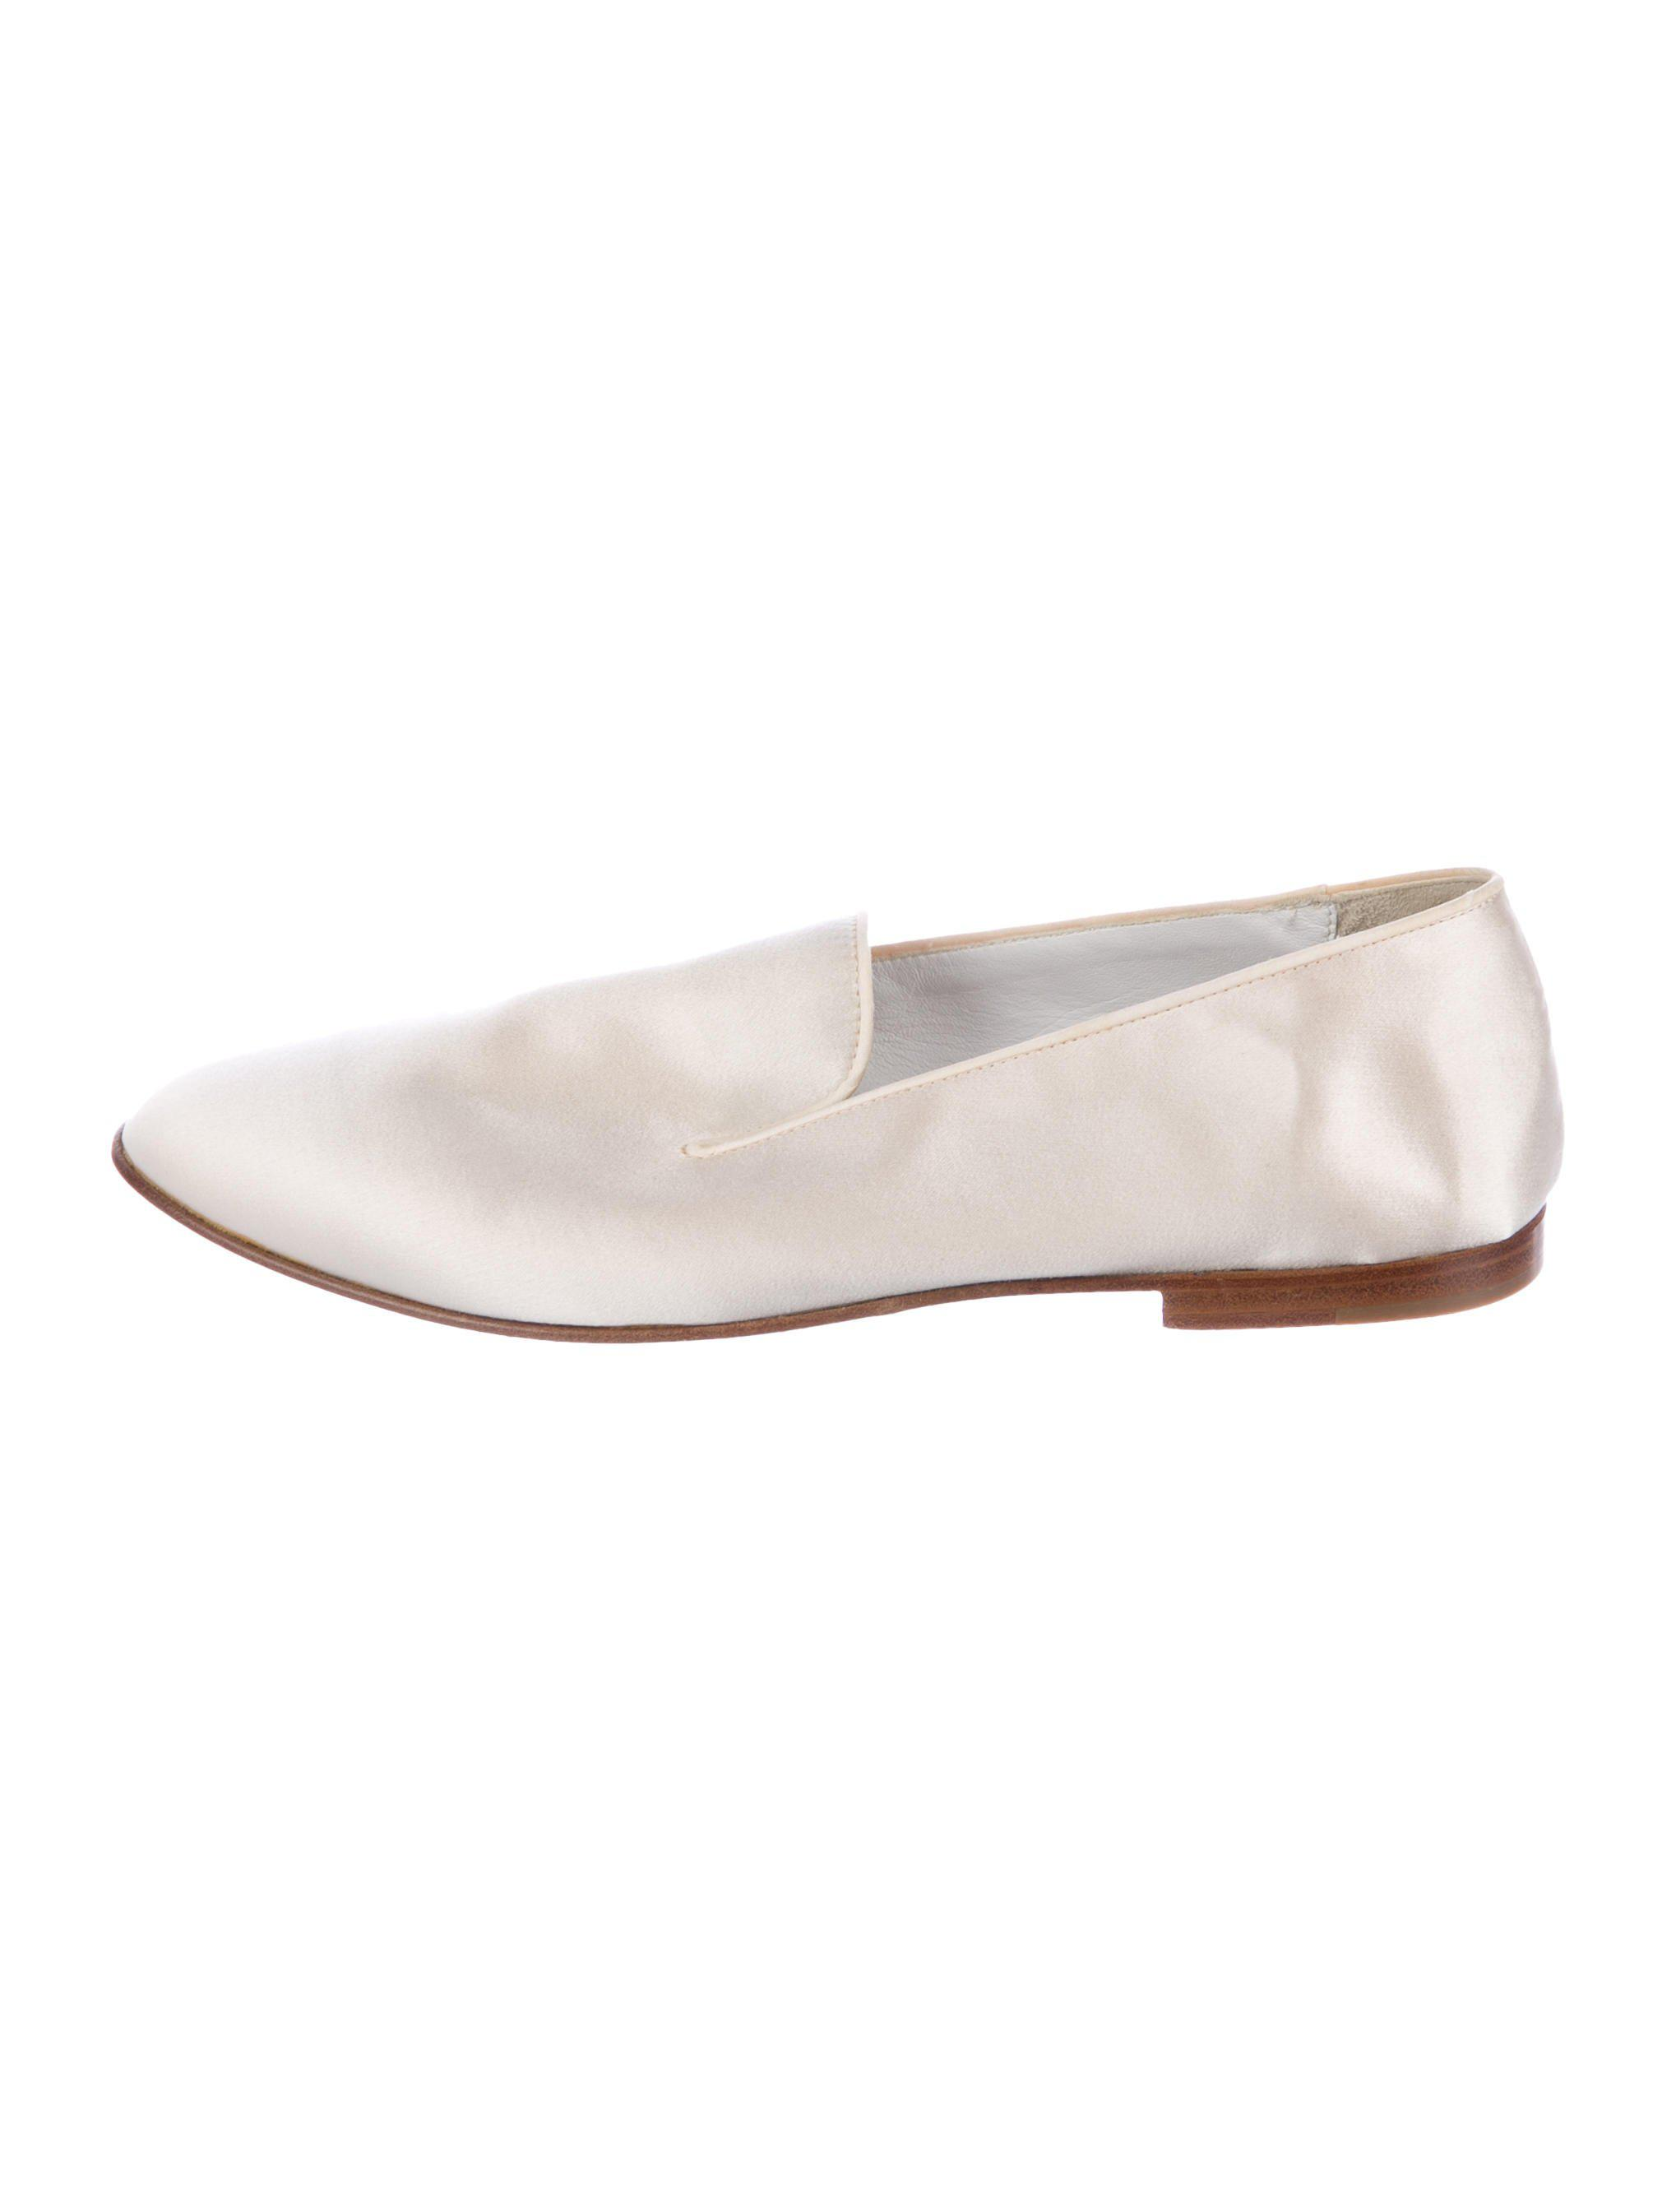 506dc0a2b85 Lyst - Loro Piana Satin Round-toe Loafers Neutrals in Natural